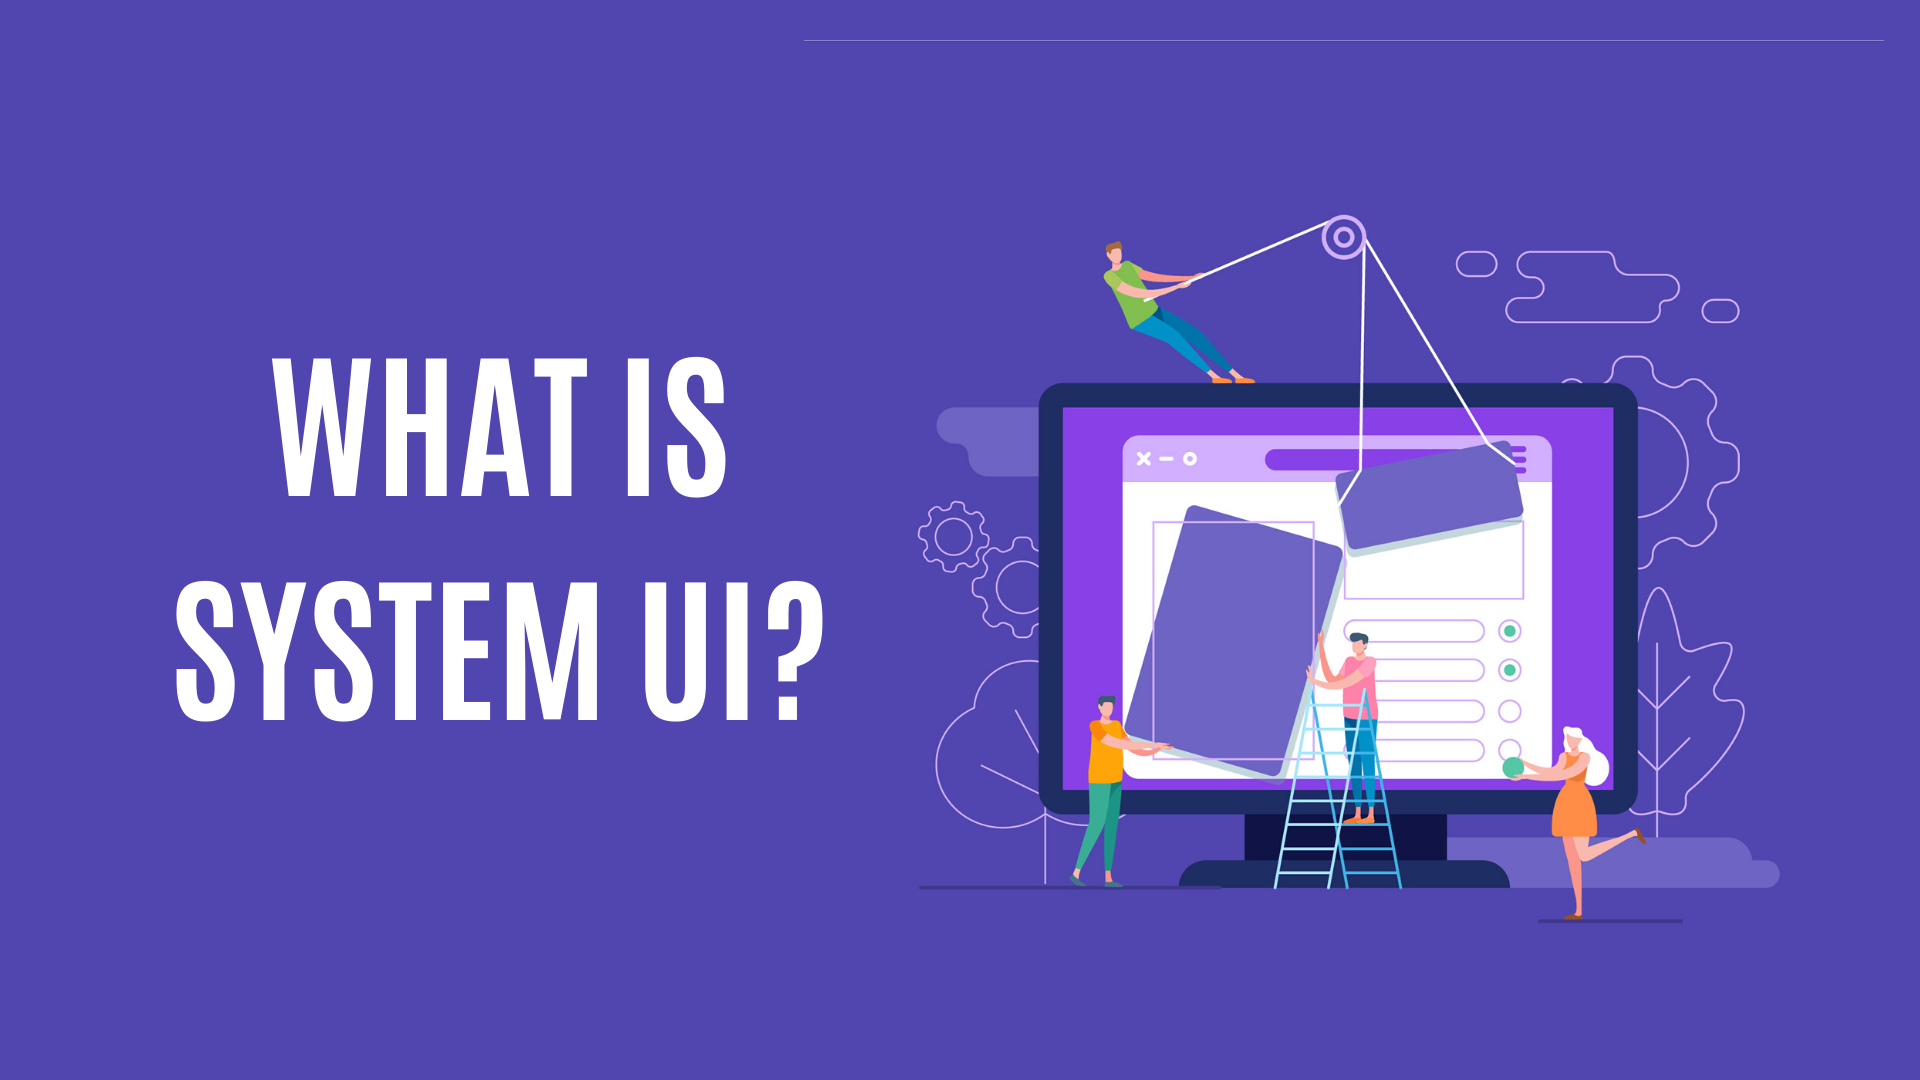 What is System UI?